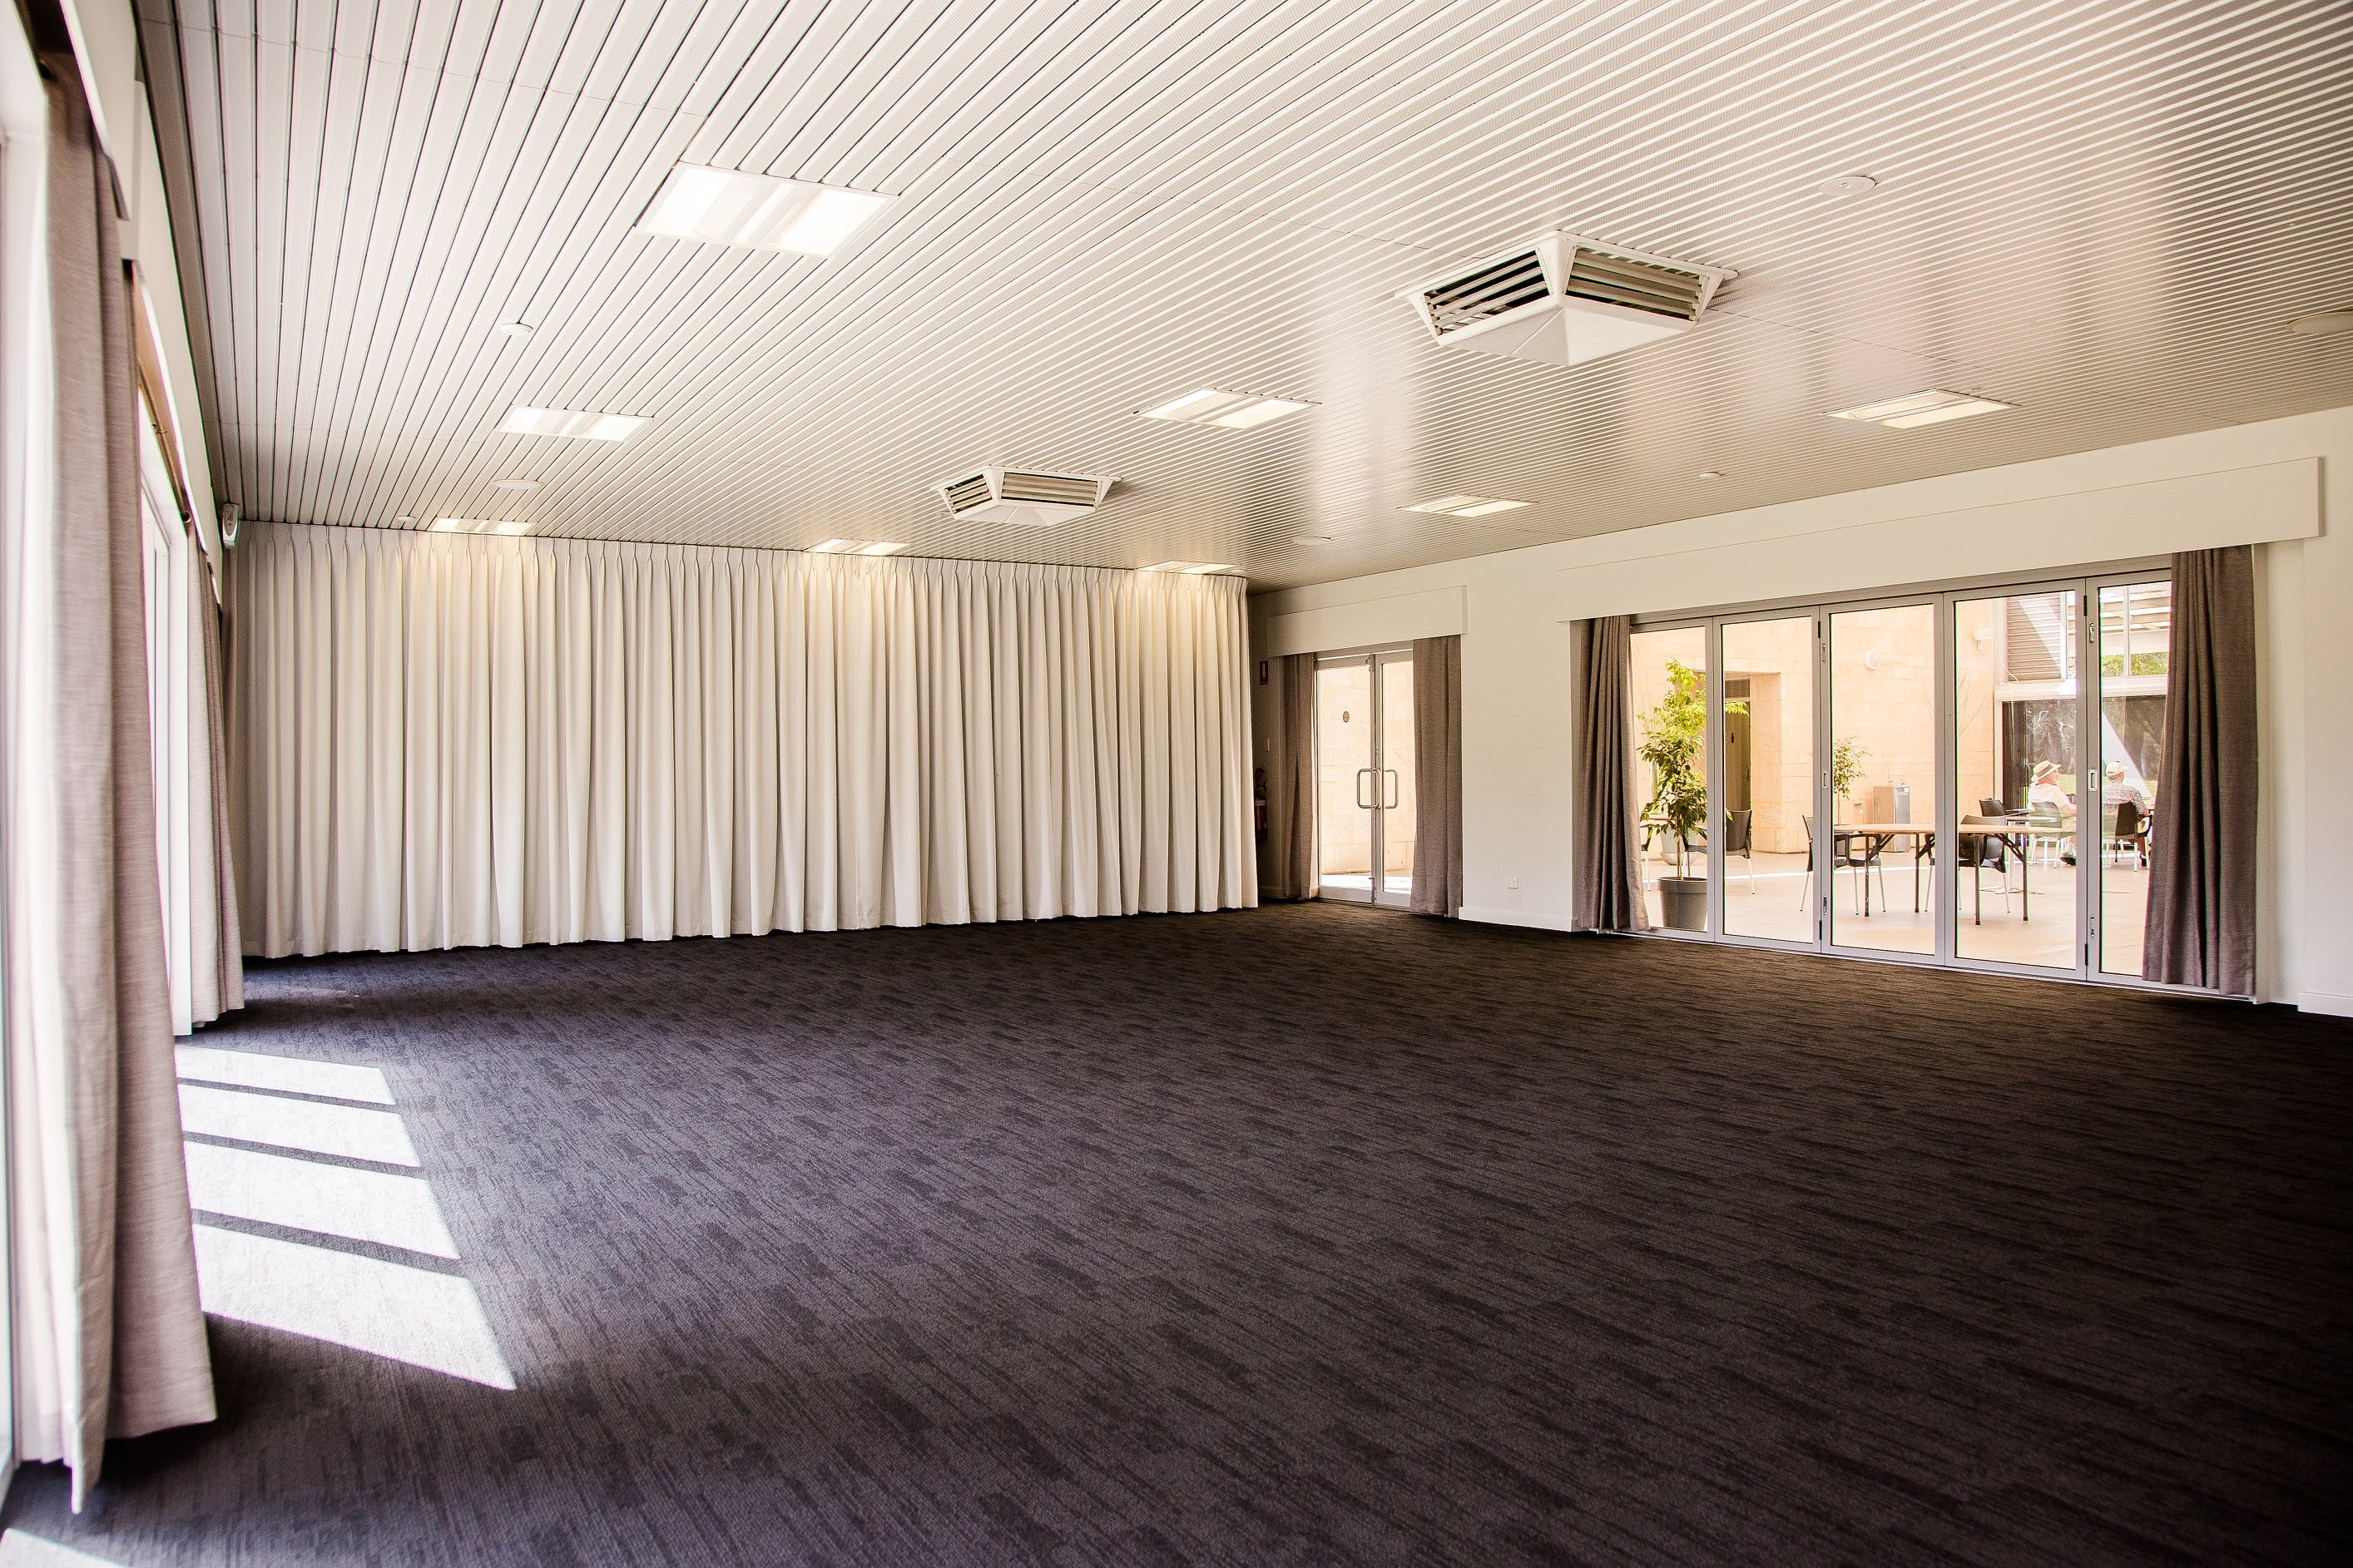 Meeting room at Point Walter Golf Course - Eagle Room, image 1